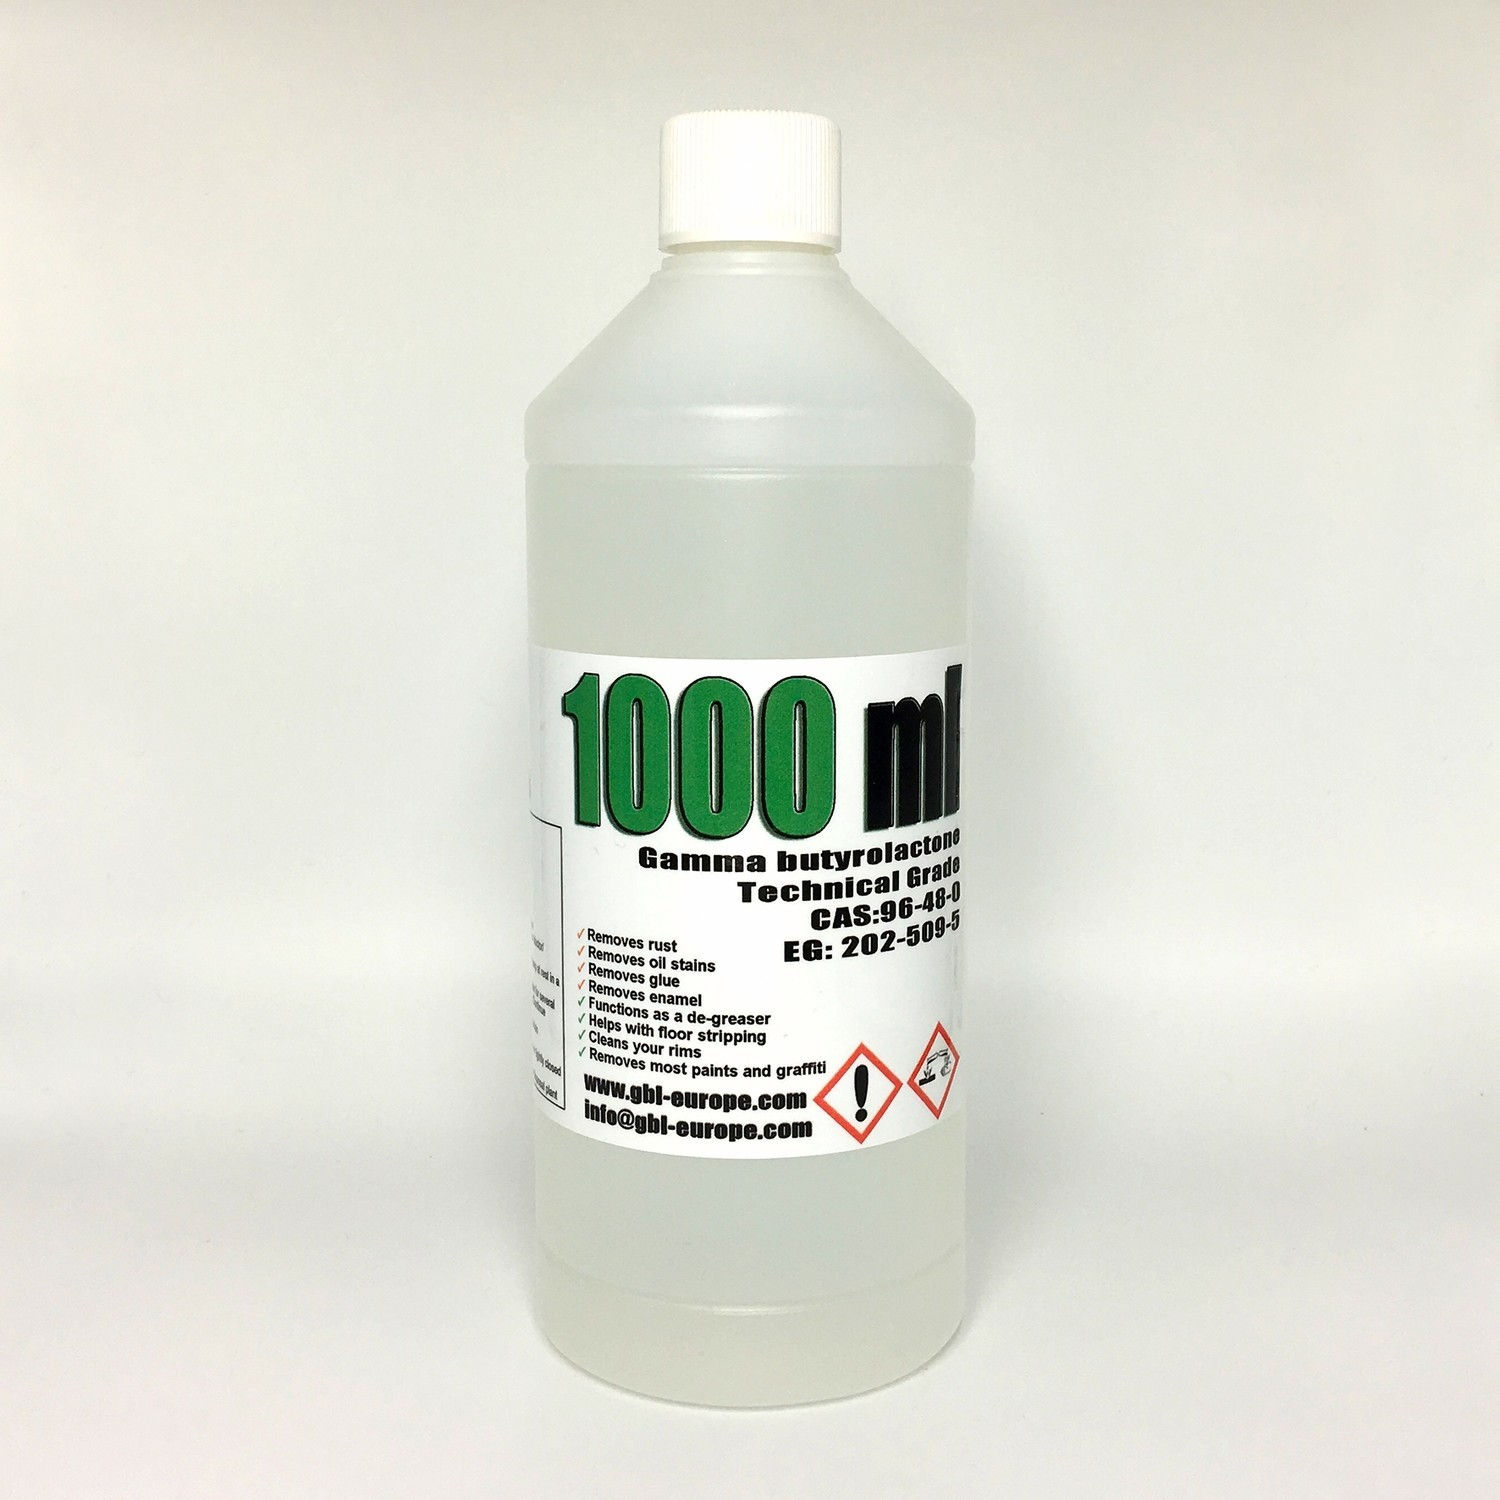 Multi Remover 1.000 ml Technical Grade manufactured in India 0126 HS Code 29322020